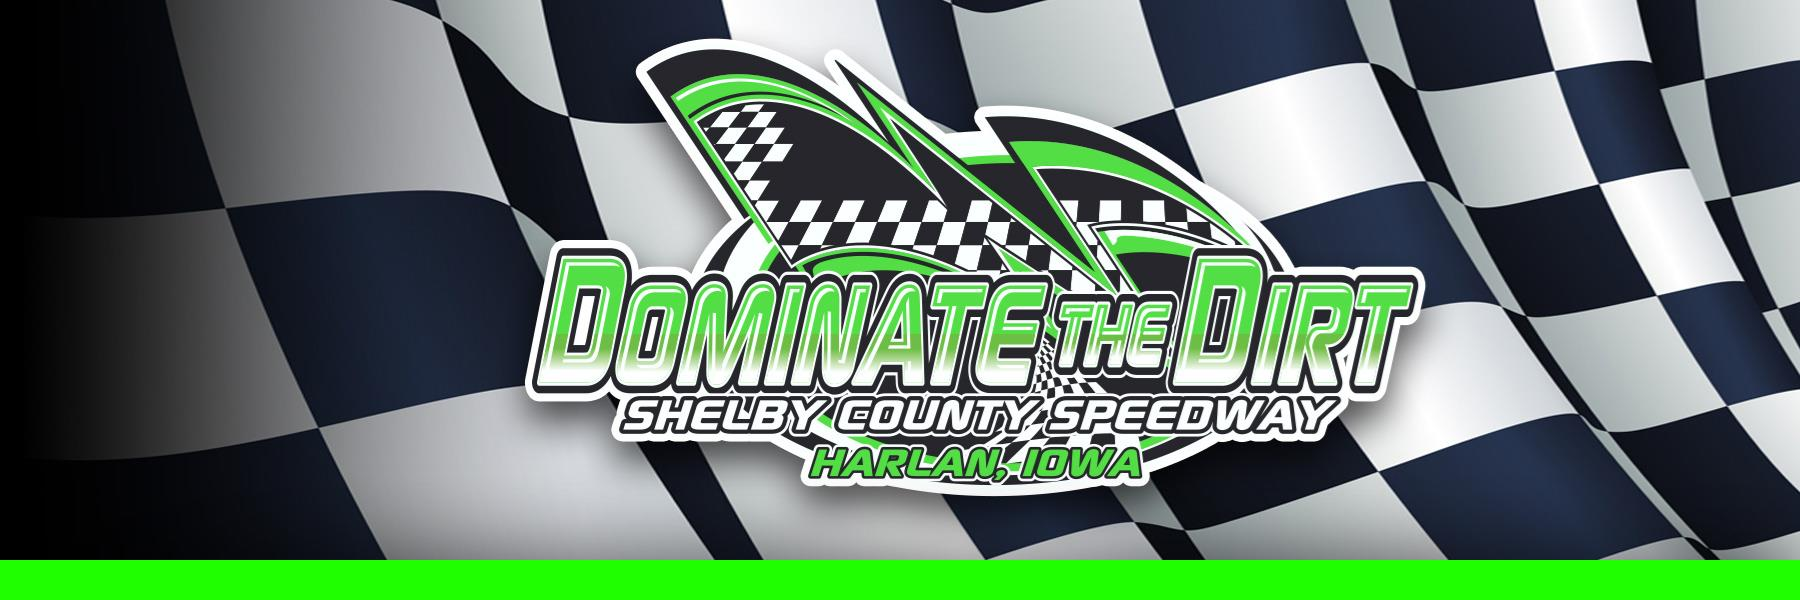 9/25/2021 - Shelby County Speedway